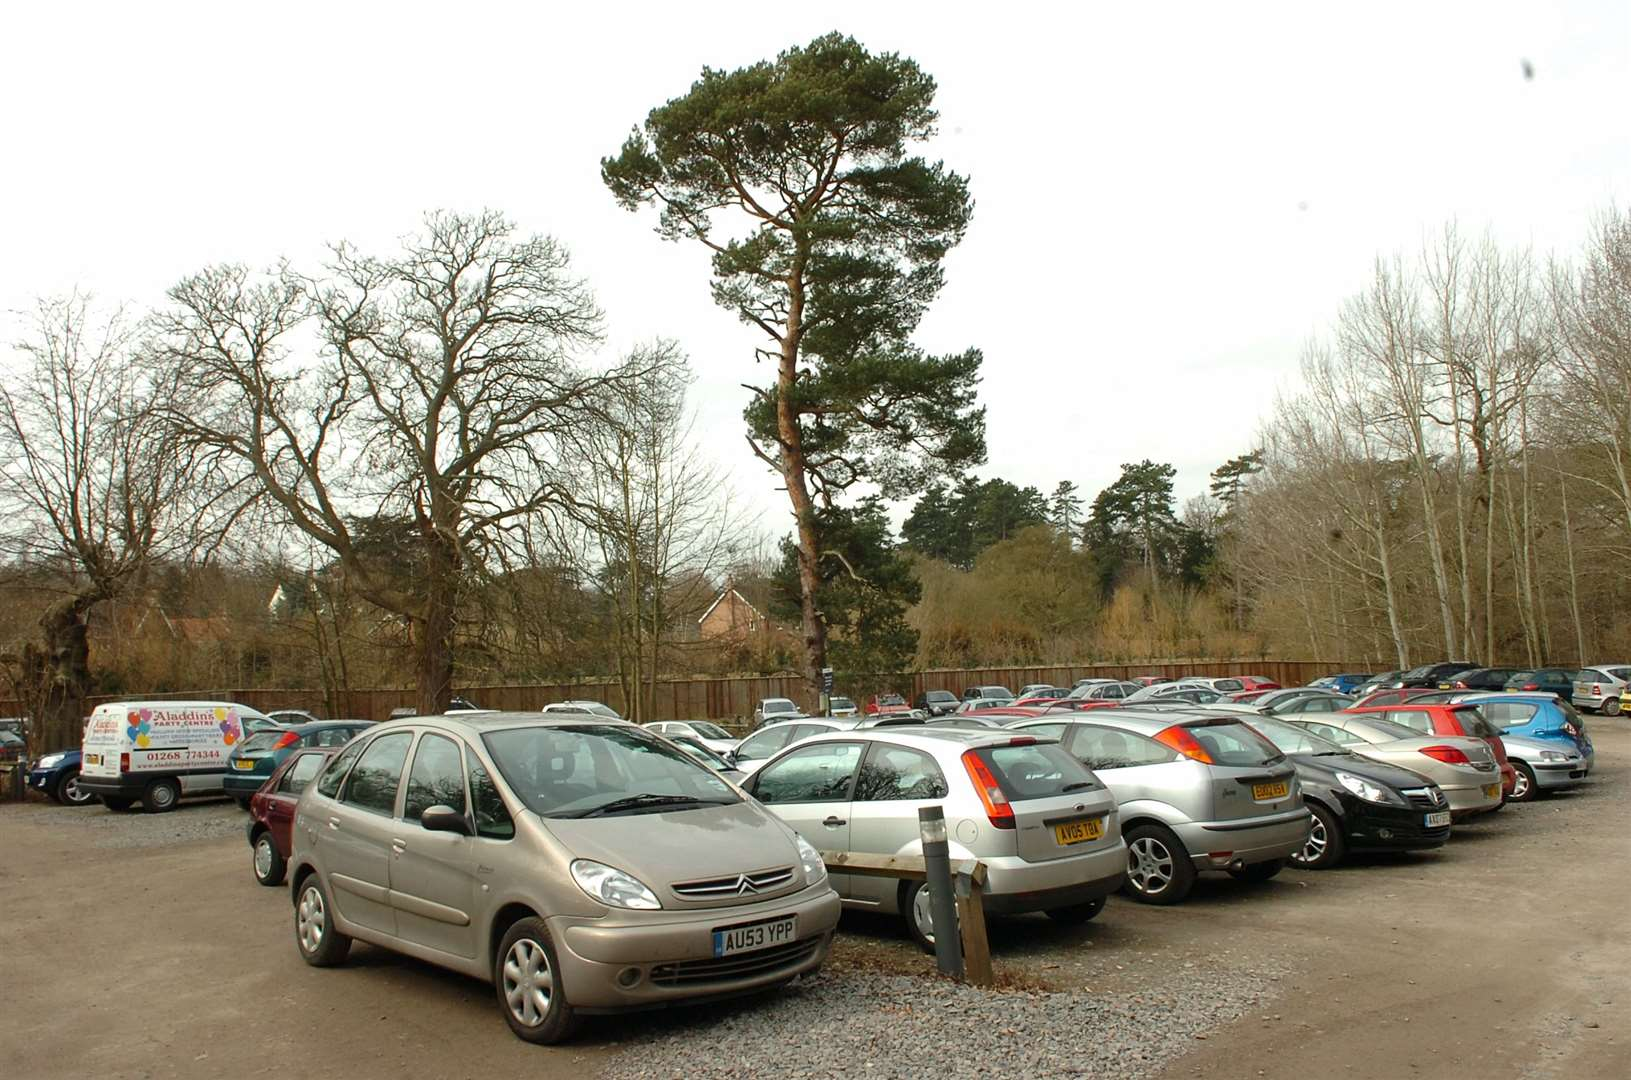 The car park at West Suffolk Hospital